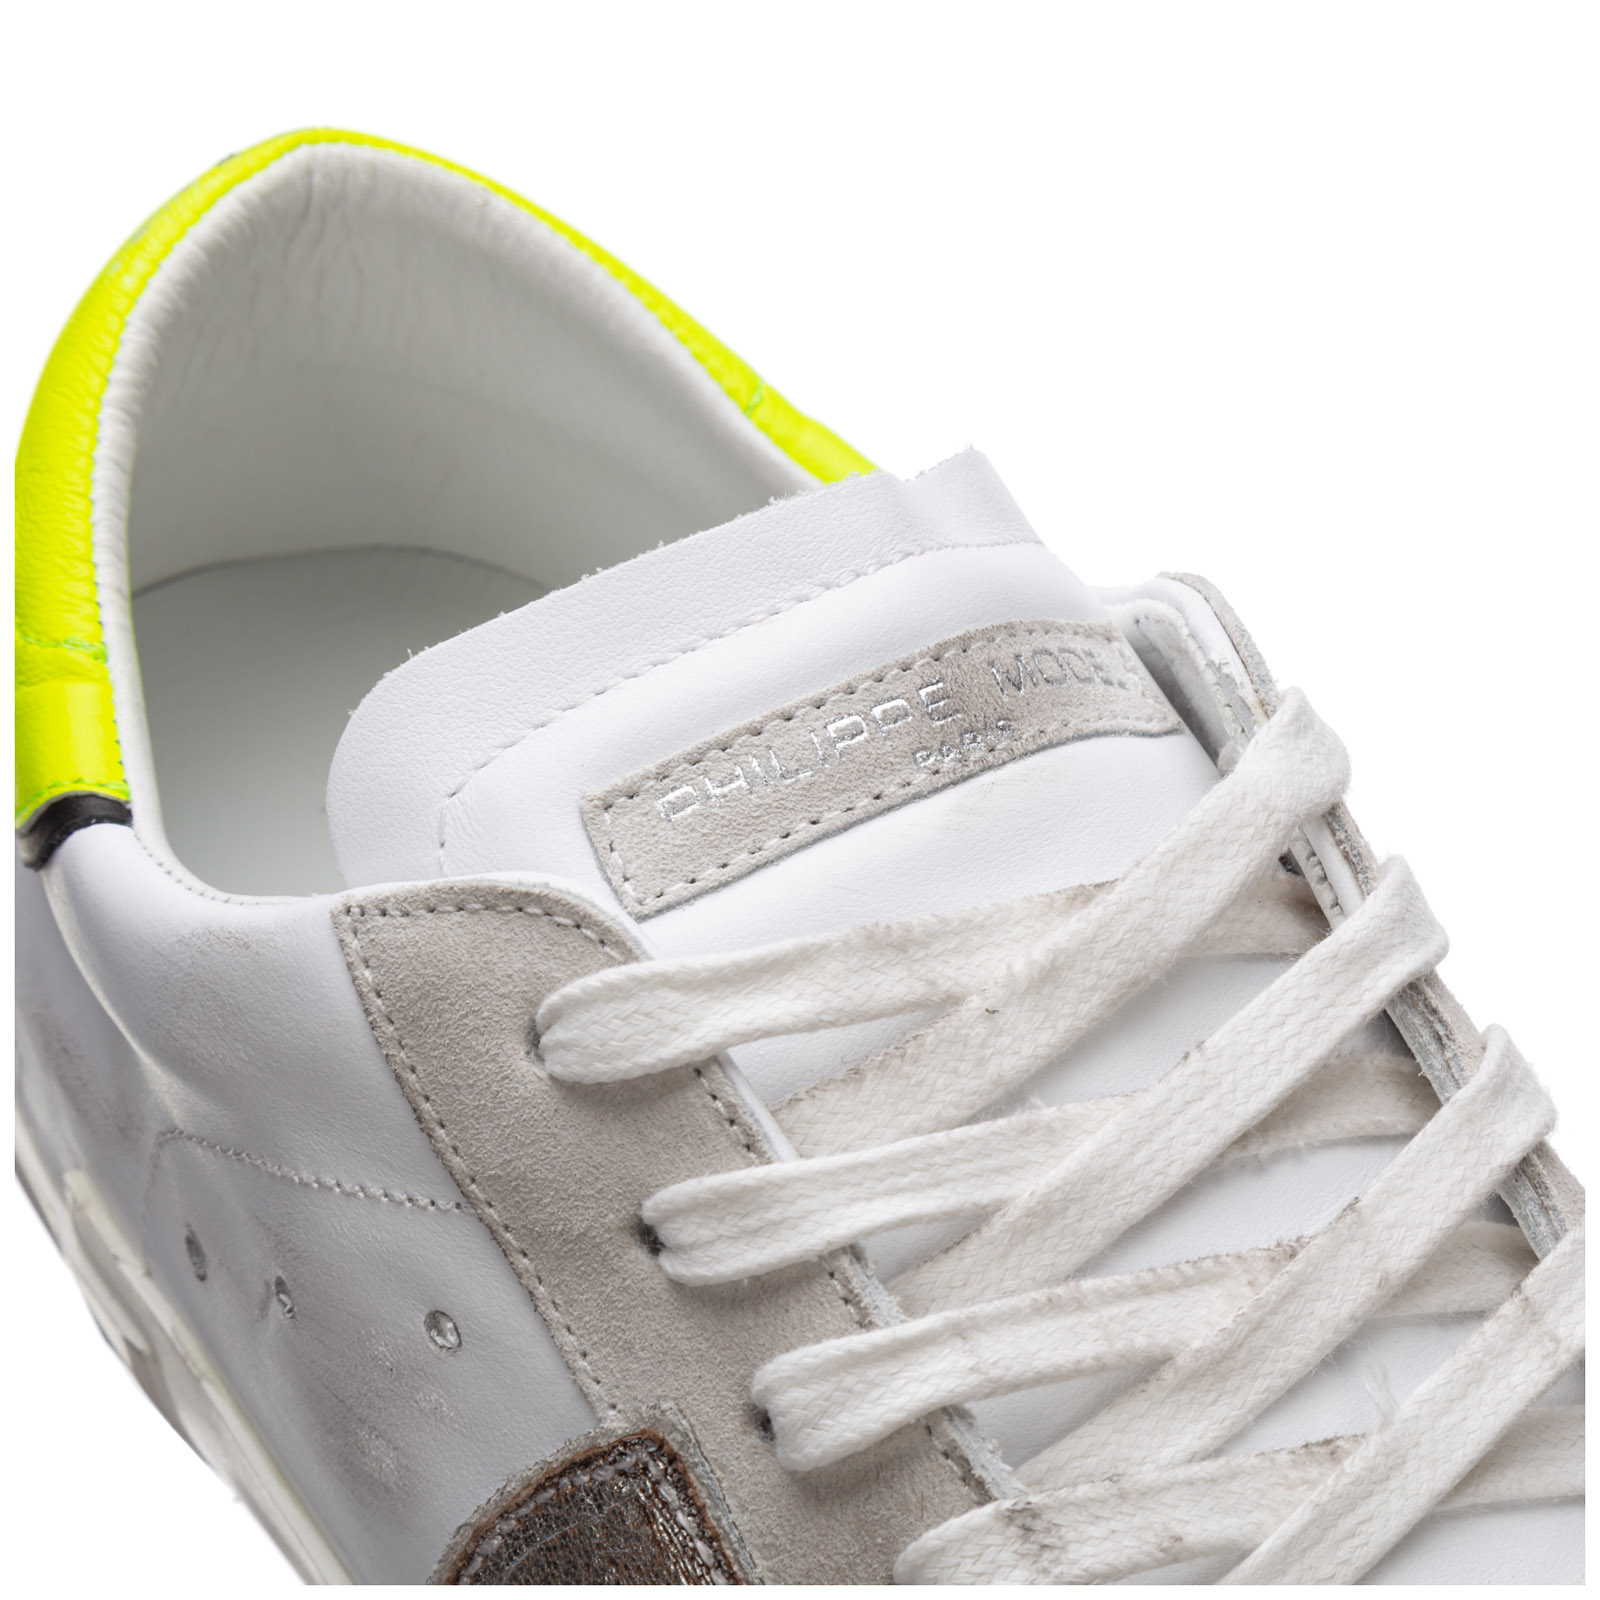 Men's shoes leather trainers sneakers prsx